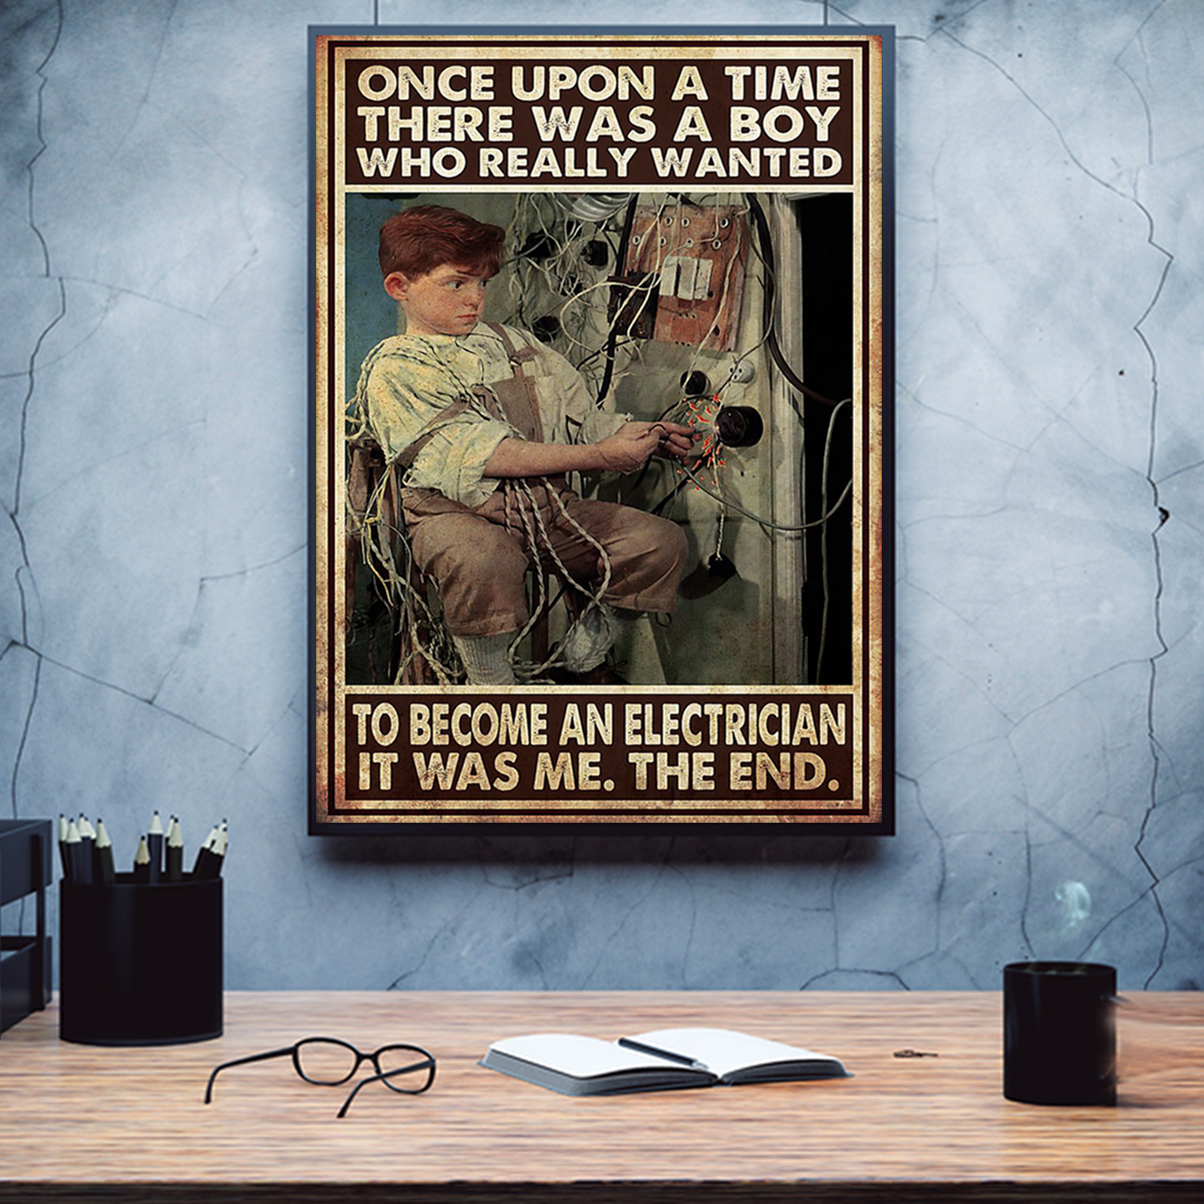 Once upon a time there was a boy who really wanted to become a electrician poster A1